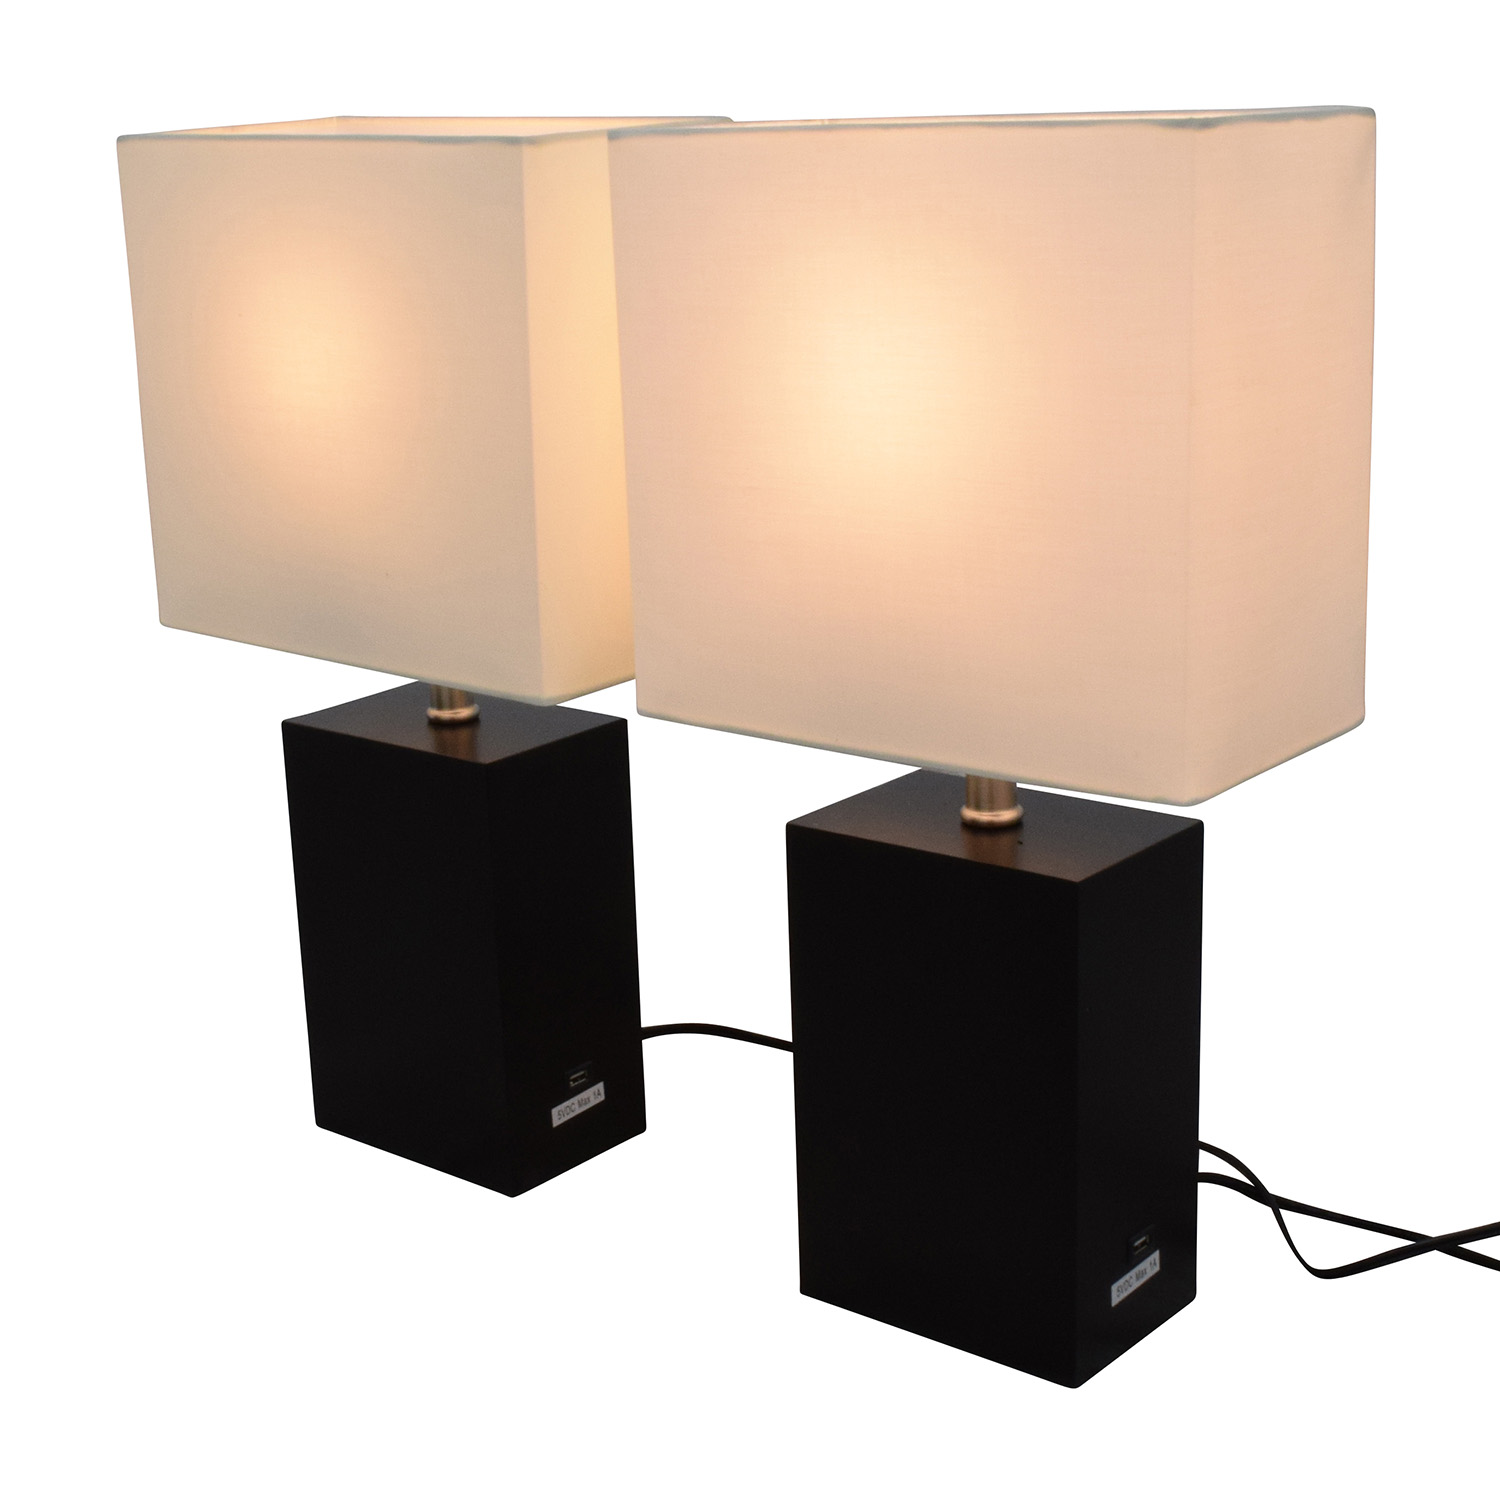 48 Off Brightech Brightech Black Wood Led Table Lamps